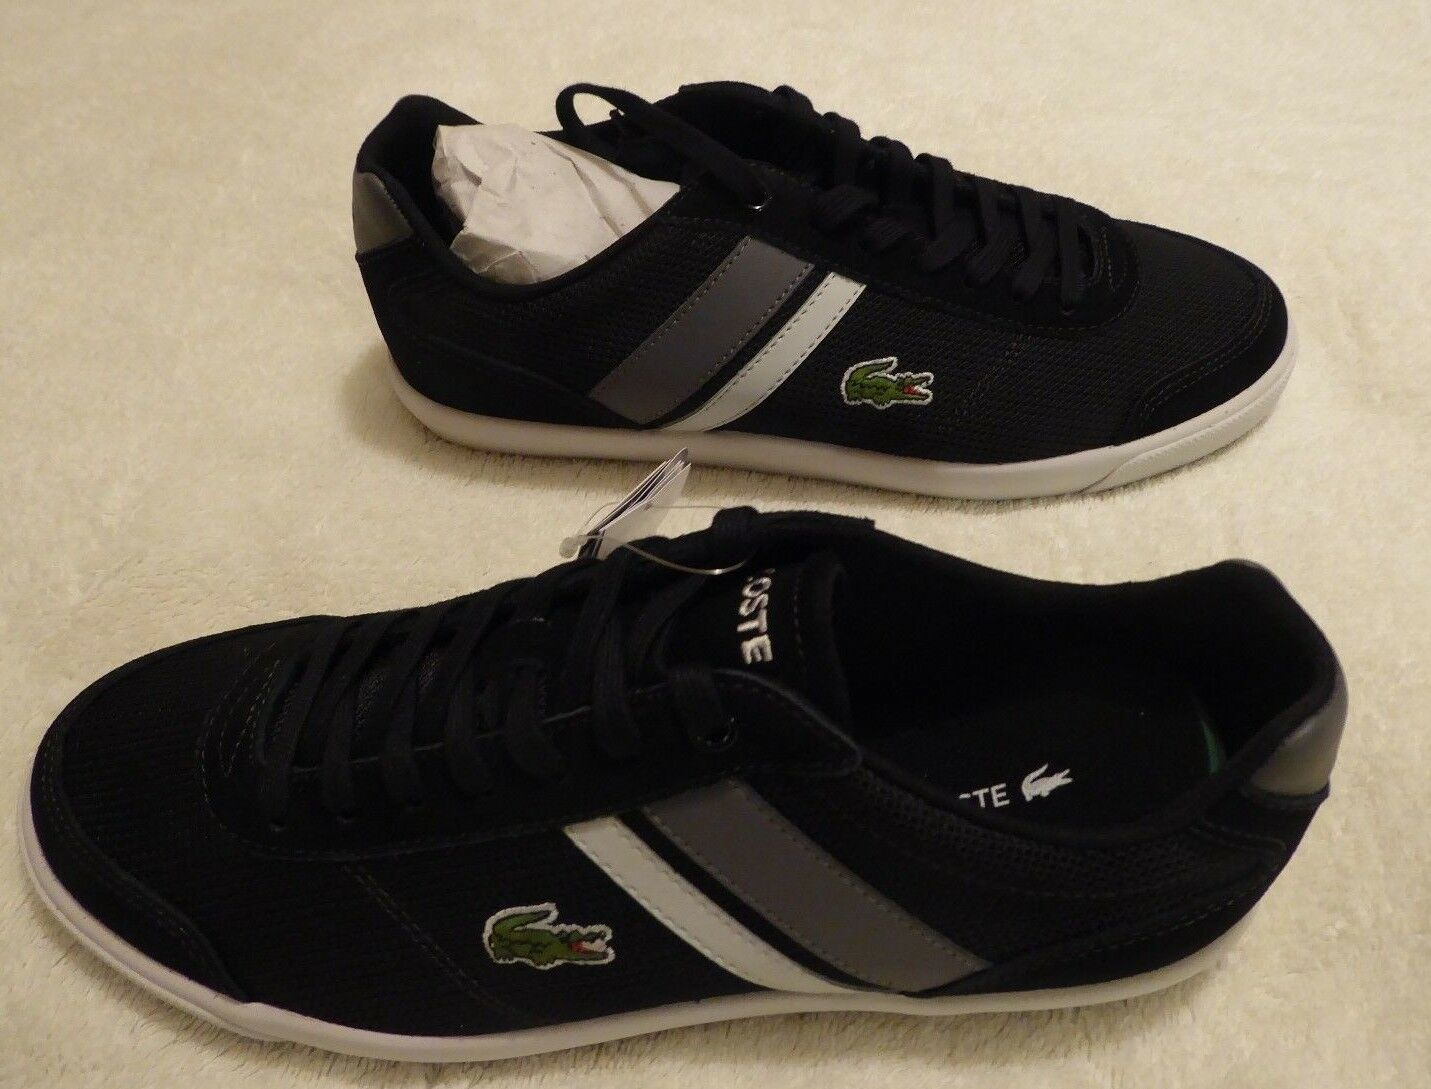 NEW BOXED MEN'S BLACK LACOSTE COMBA TRAINERS SHOES - SIZE 7 - £44.95 & FREE POST